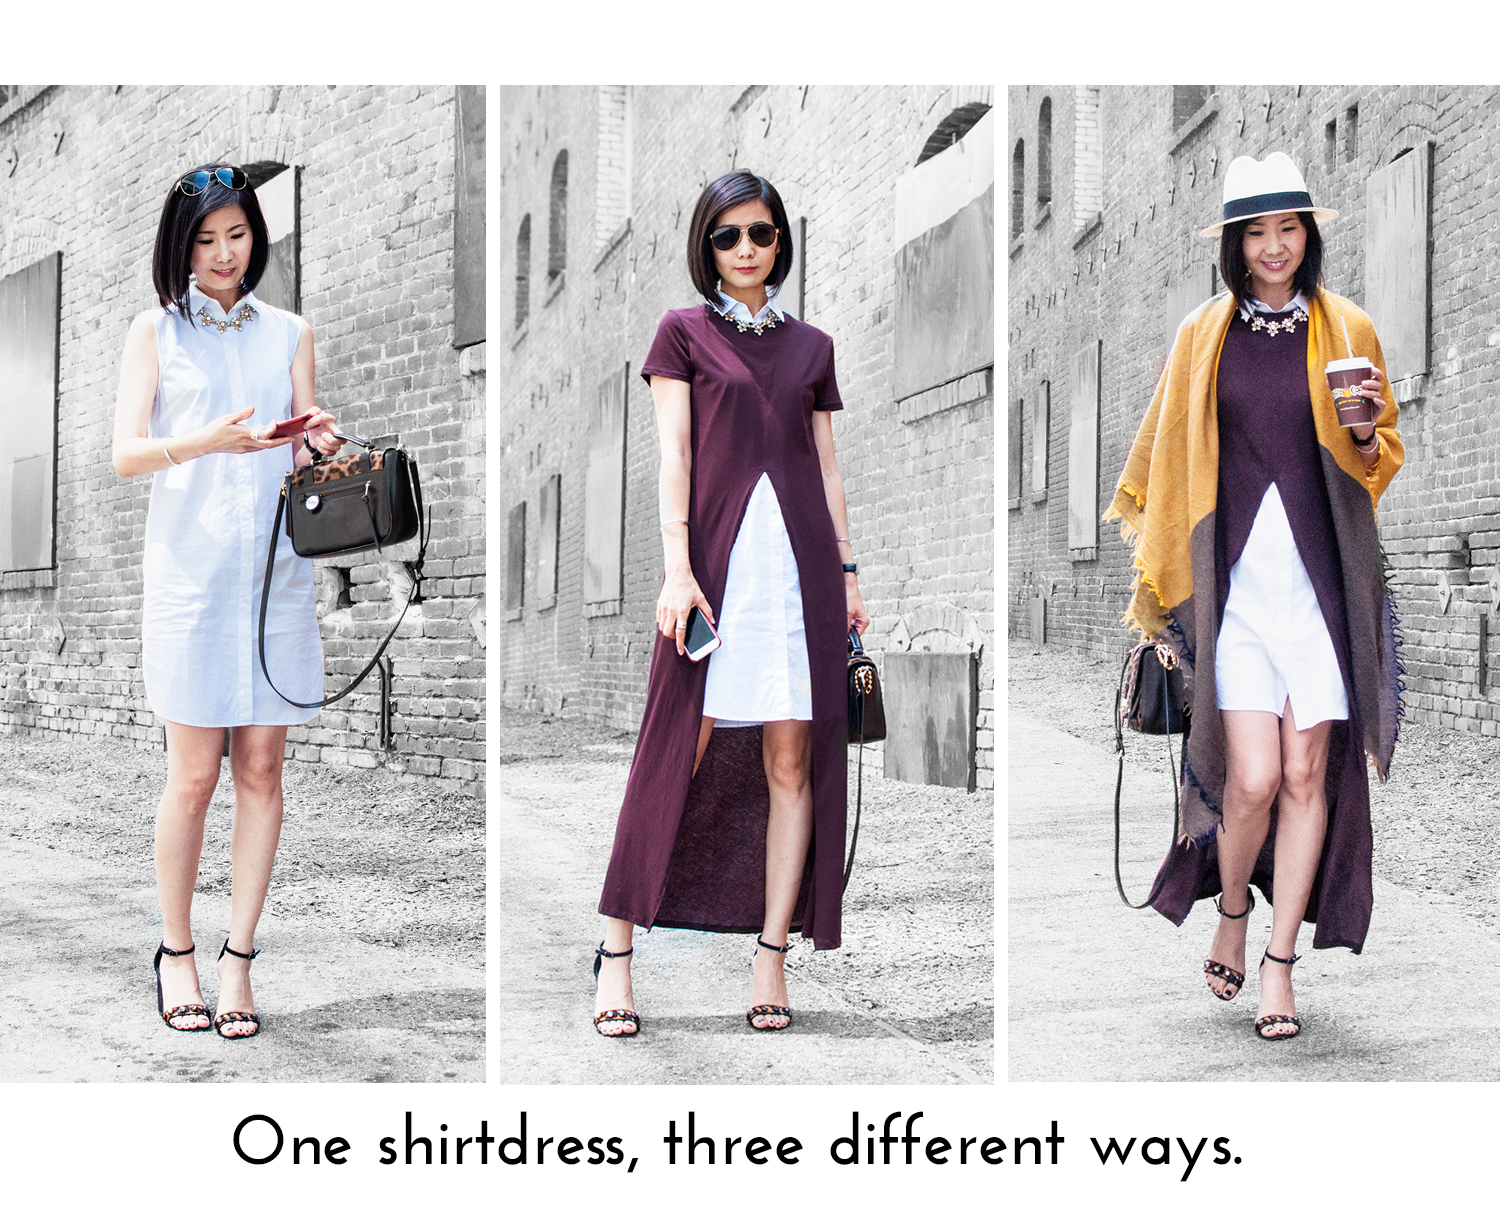 one shirtdress, three different ways